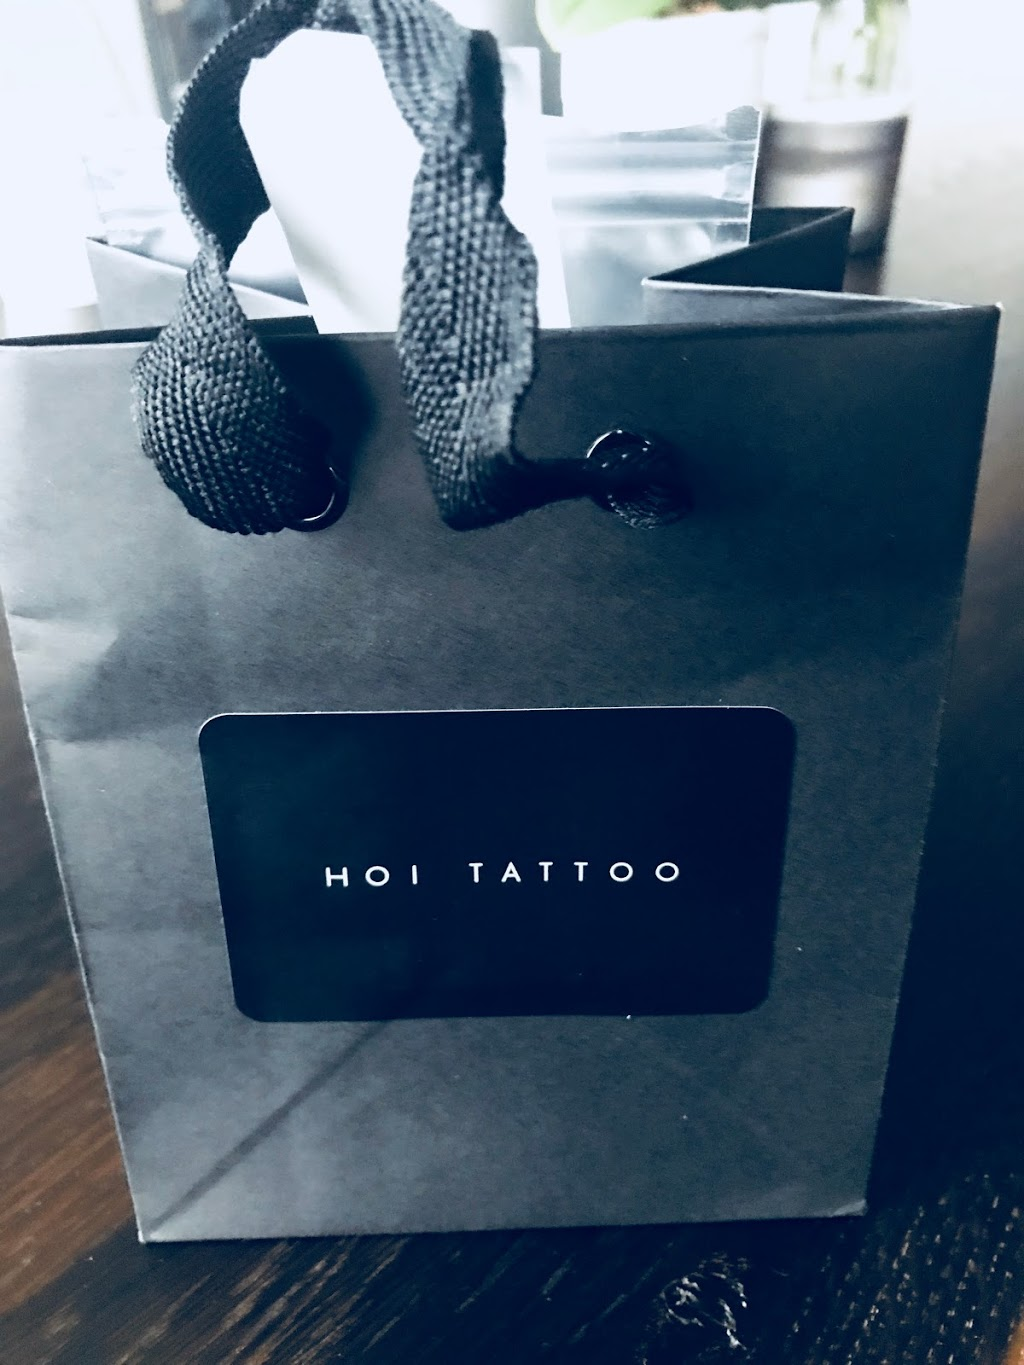 Hoi Tattoo | hair care | 607 Confluence Way SE, Calgary, AB T2G 1C3, Canada | 4038138083 OR +1 403-813-8083